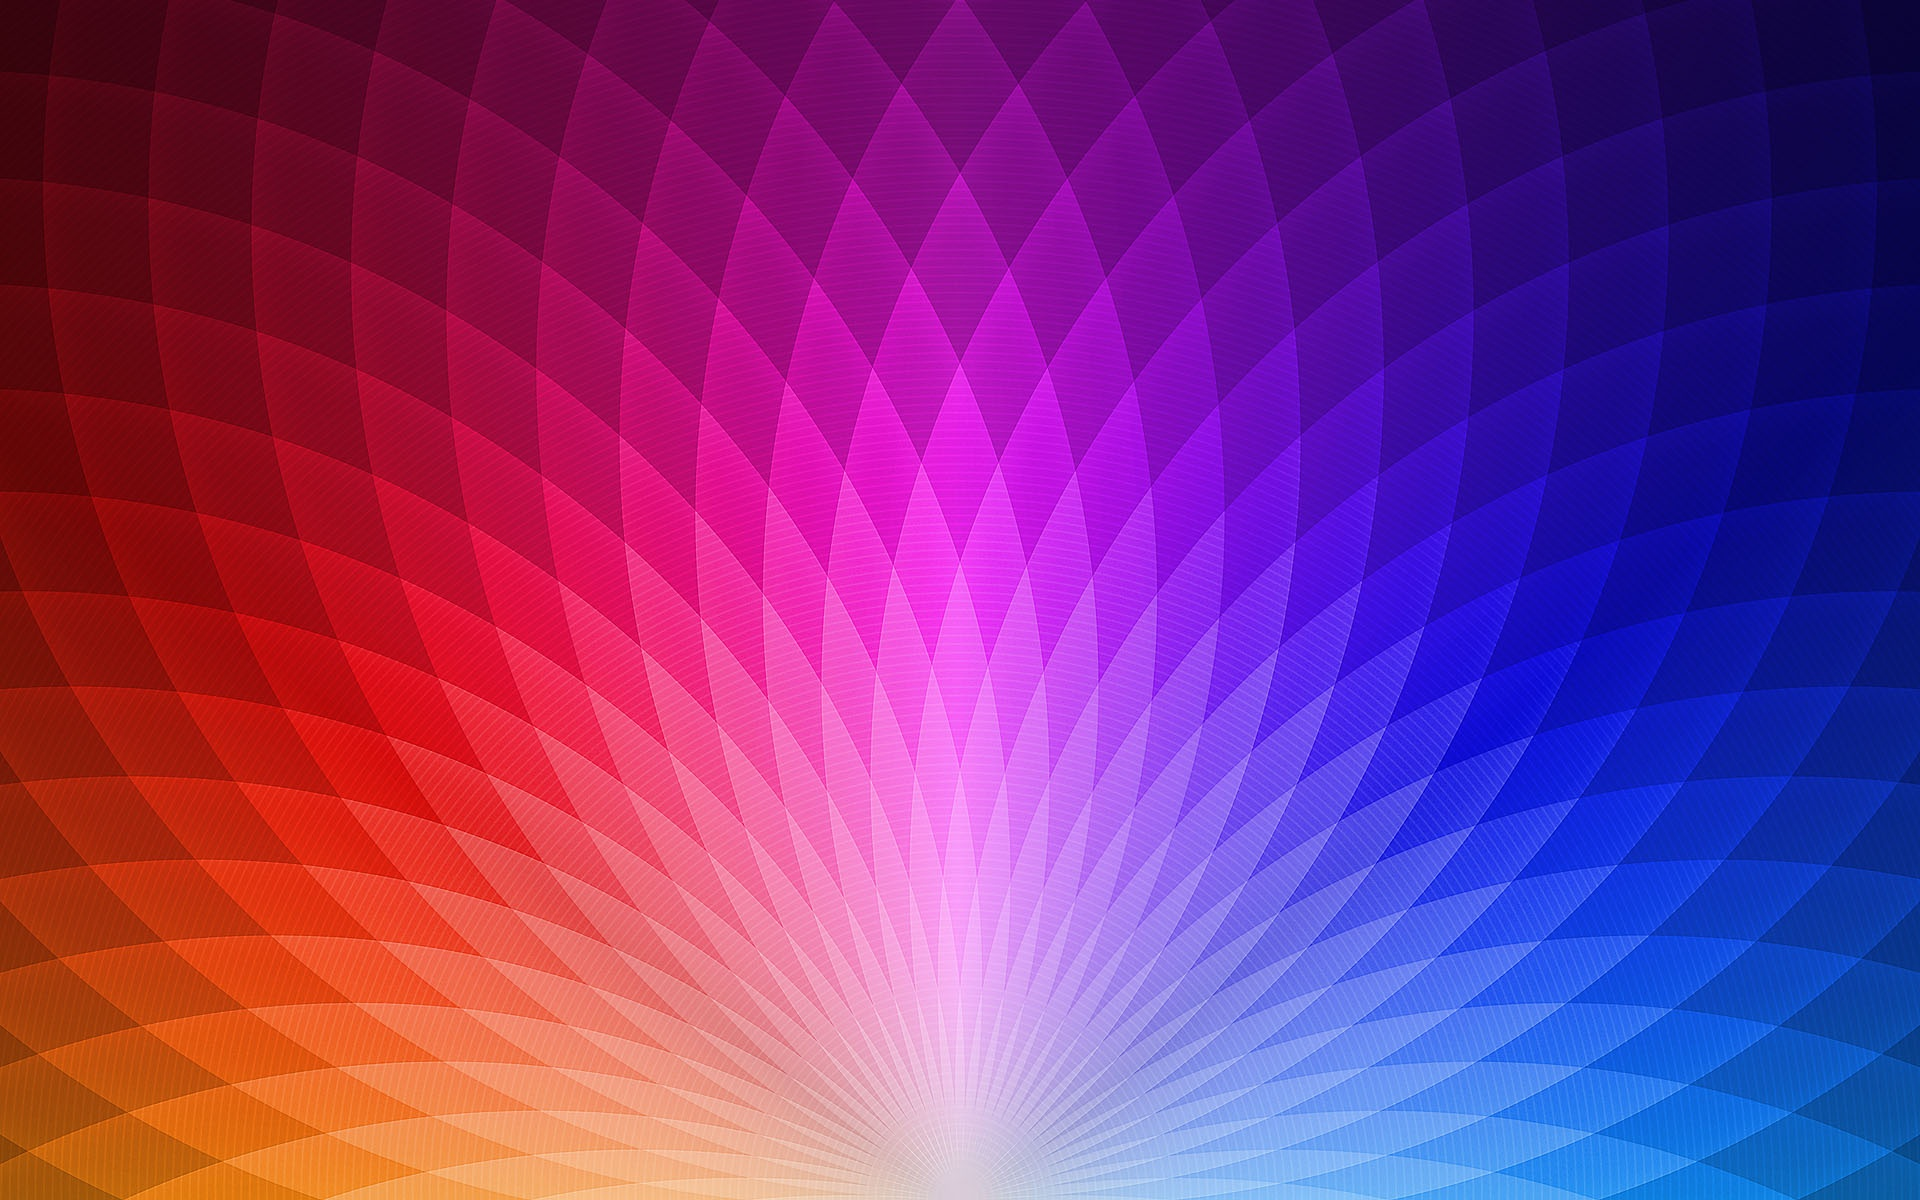 Colorful Geometric Hd Wallpaper Wallpaper List 1920x1200